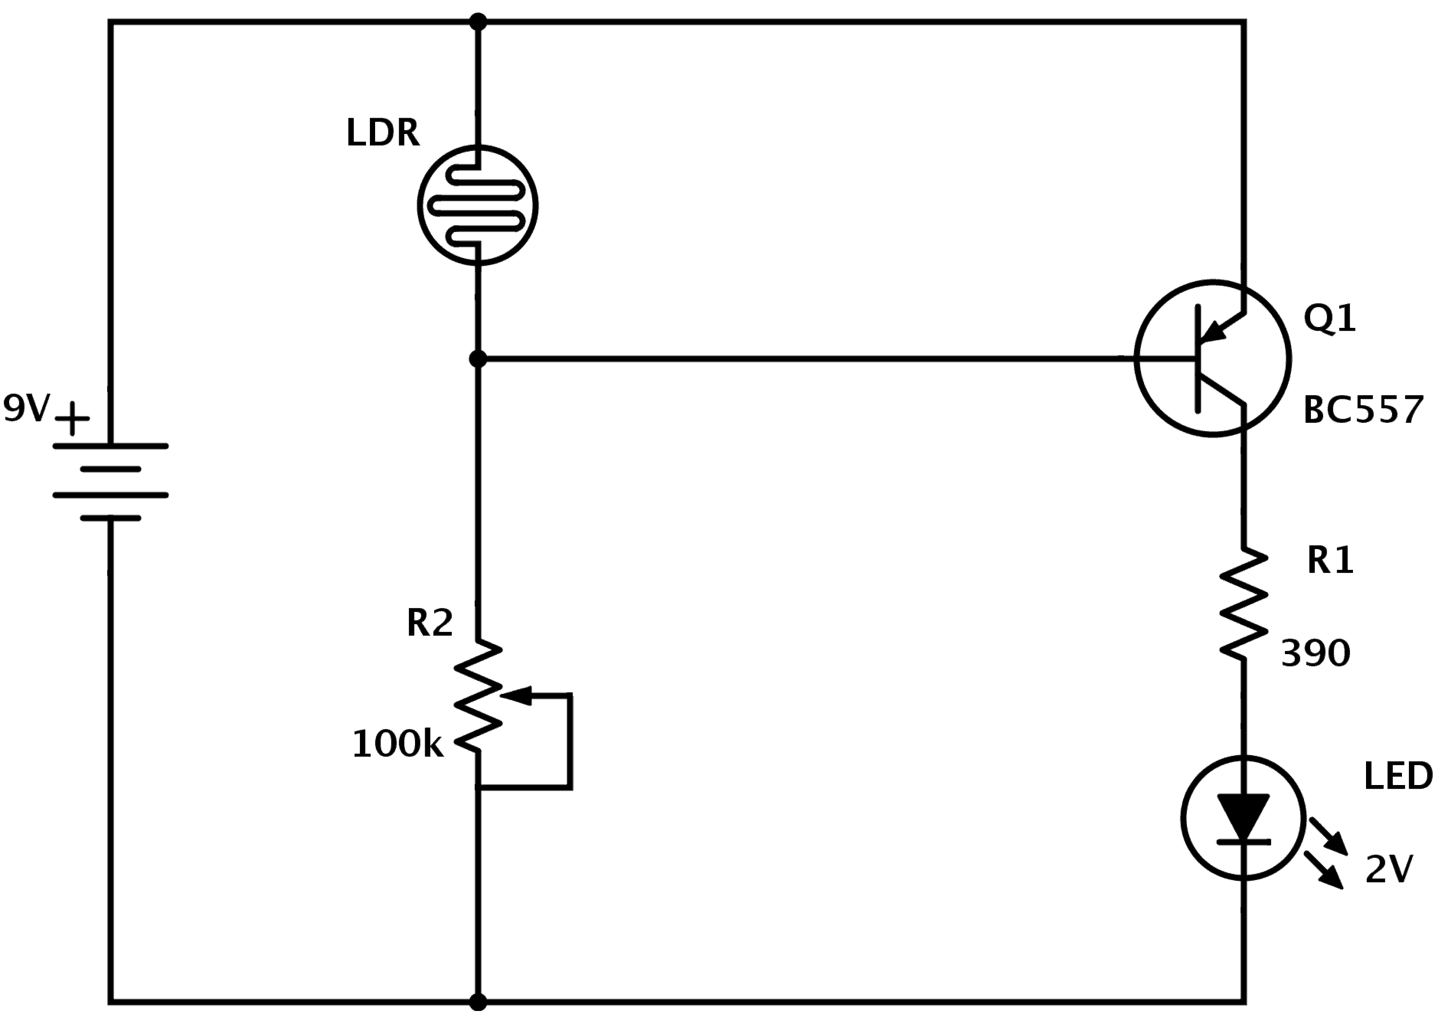 Ldr Circuit Diagram Build Electronic Circuits Electric With Switch Battery And Lamp A Series Pnp Transistor Dark Detector